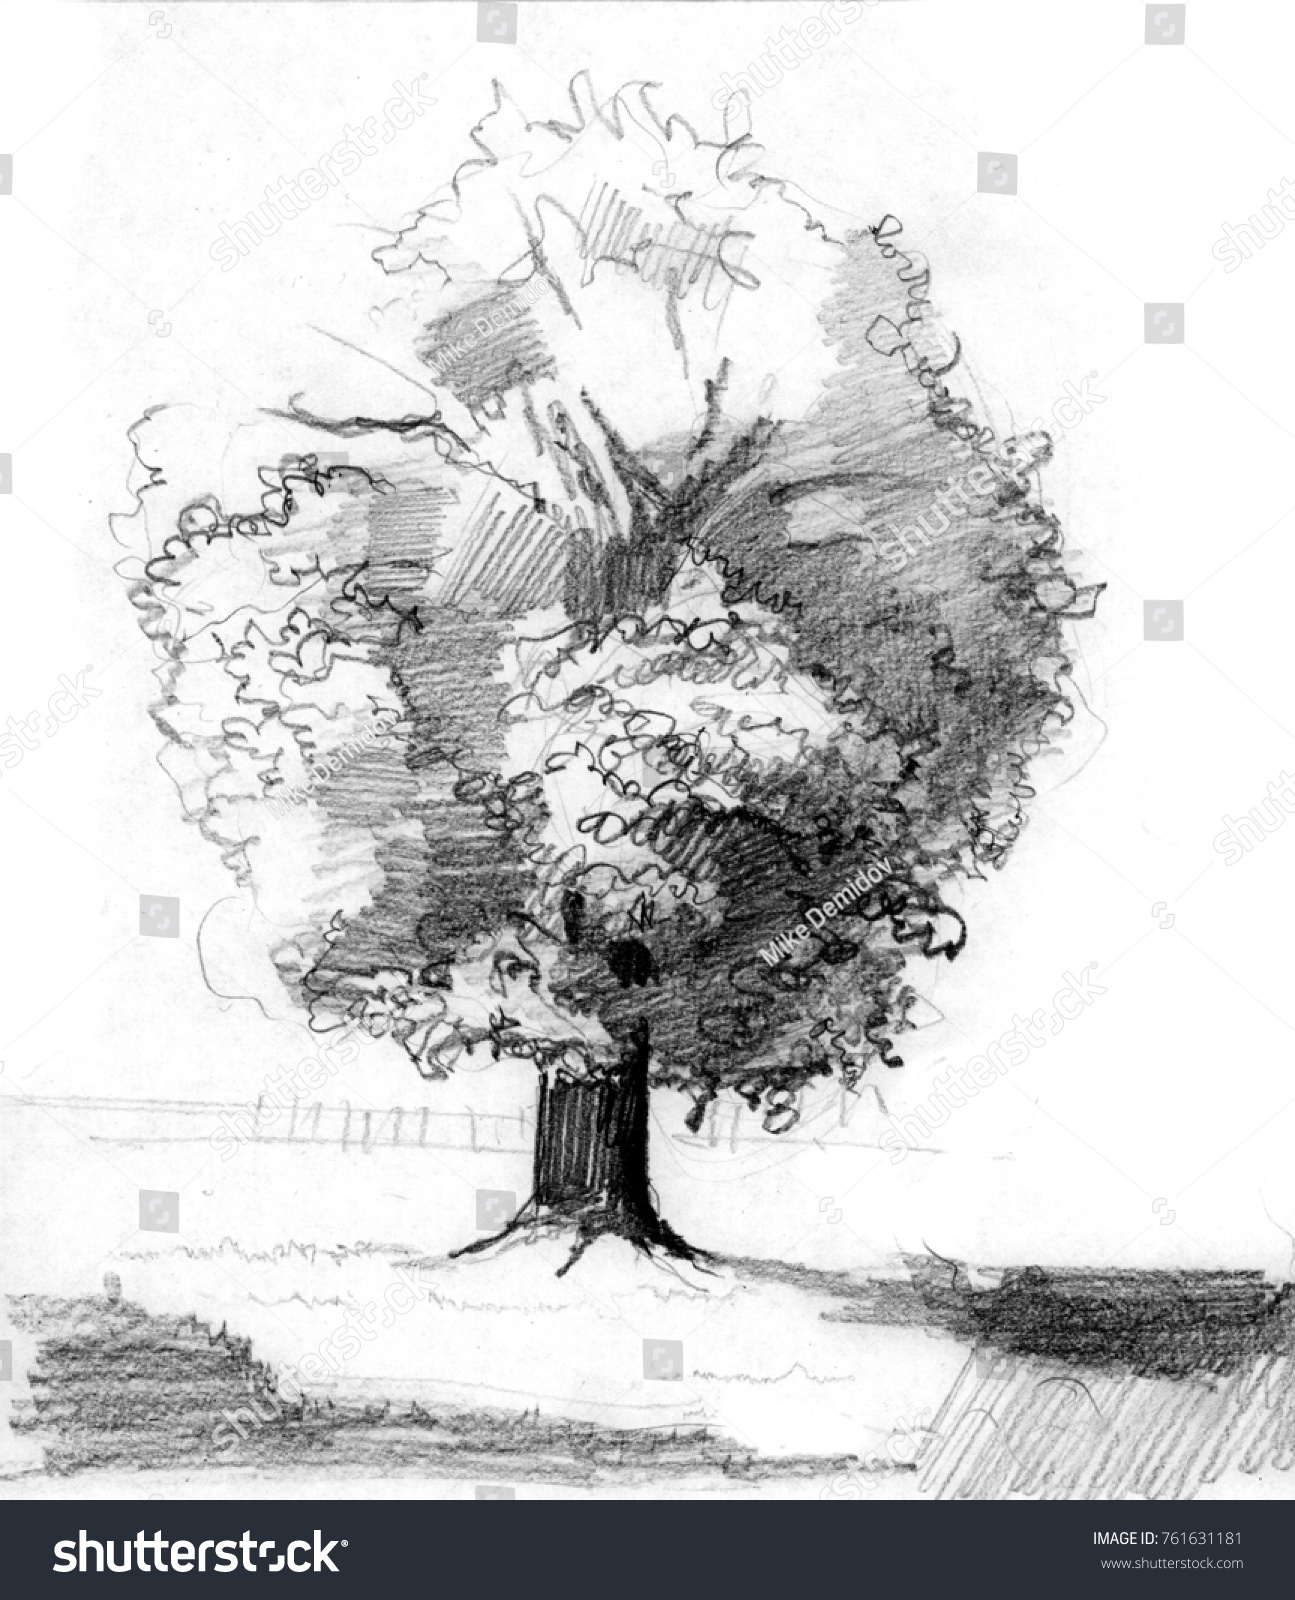 Pencil sketch of alone oak in the field